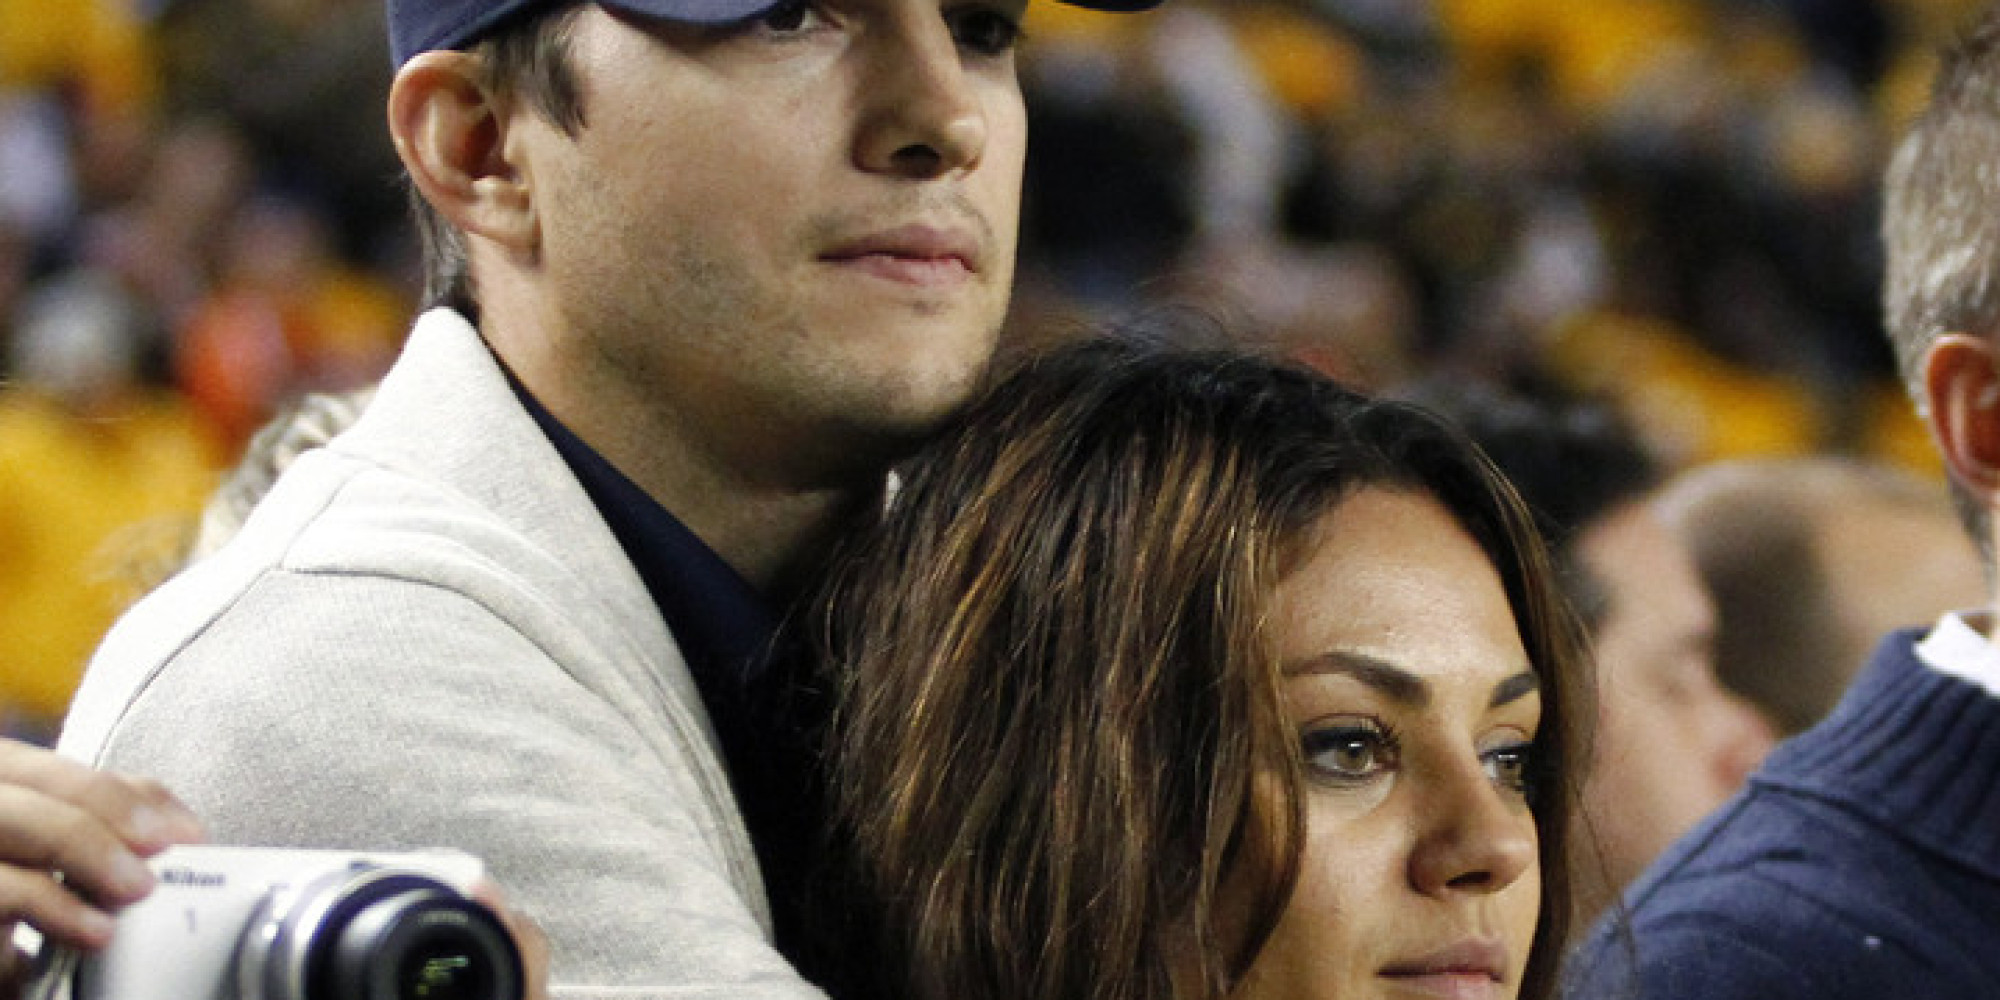 ashton kutcher and mila kunis dating Ashton kutcher's quiet romance with mila kunis has reportedly blossomed into an engagement.